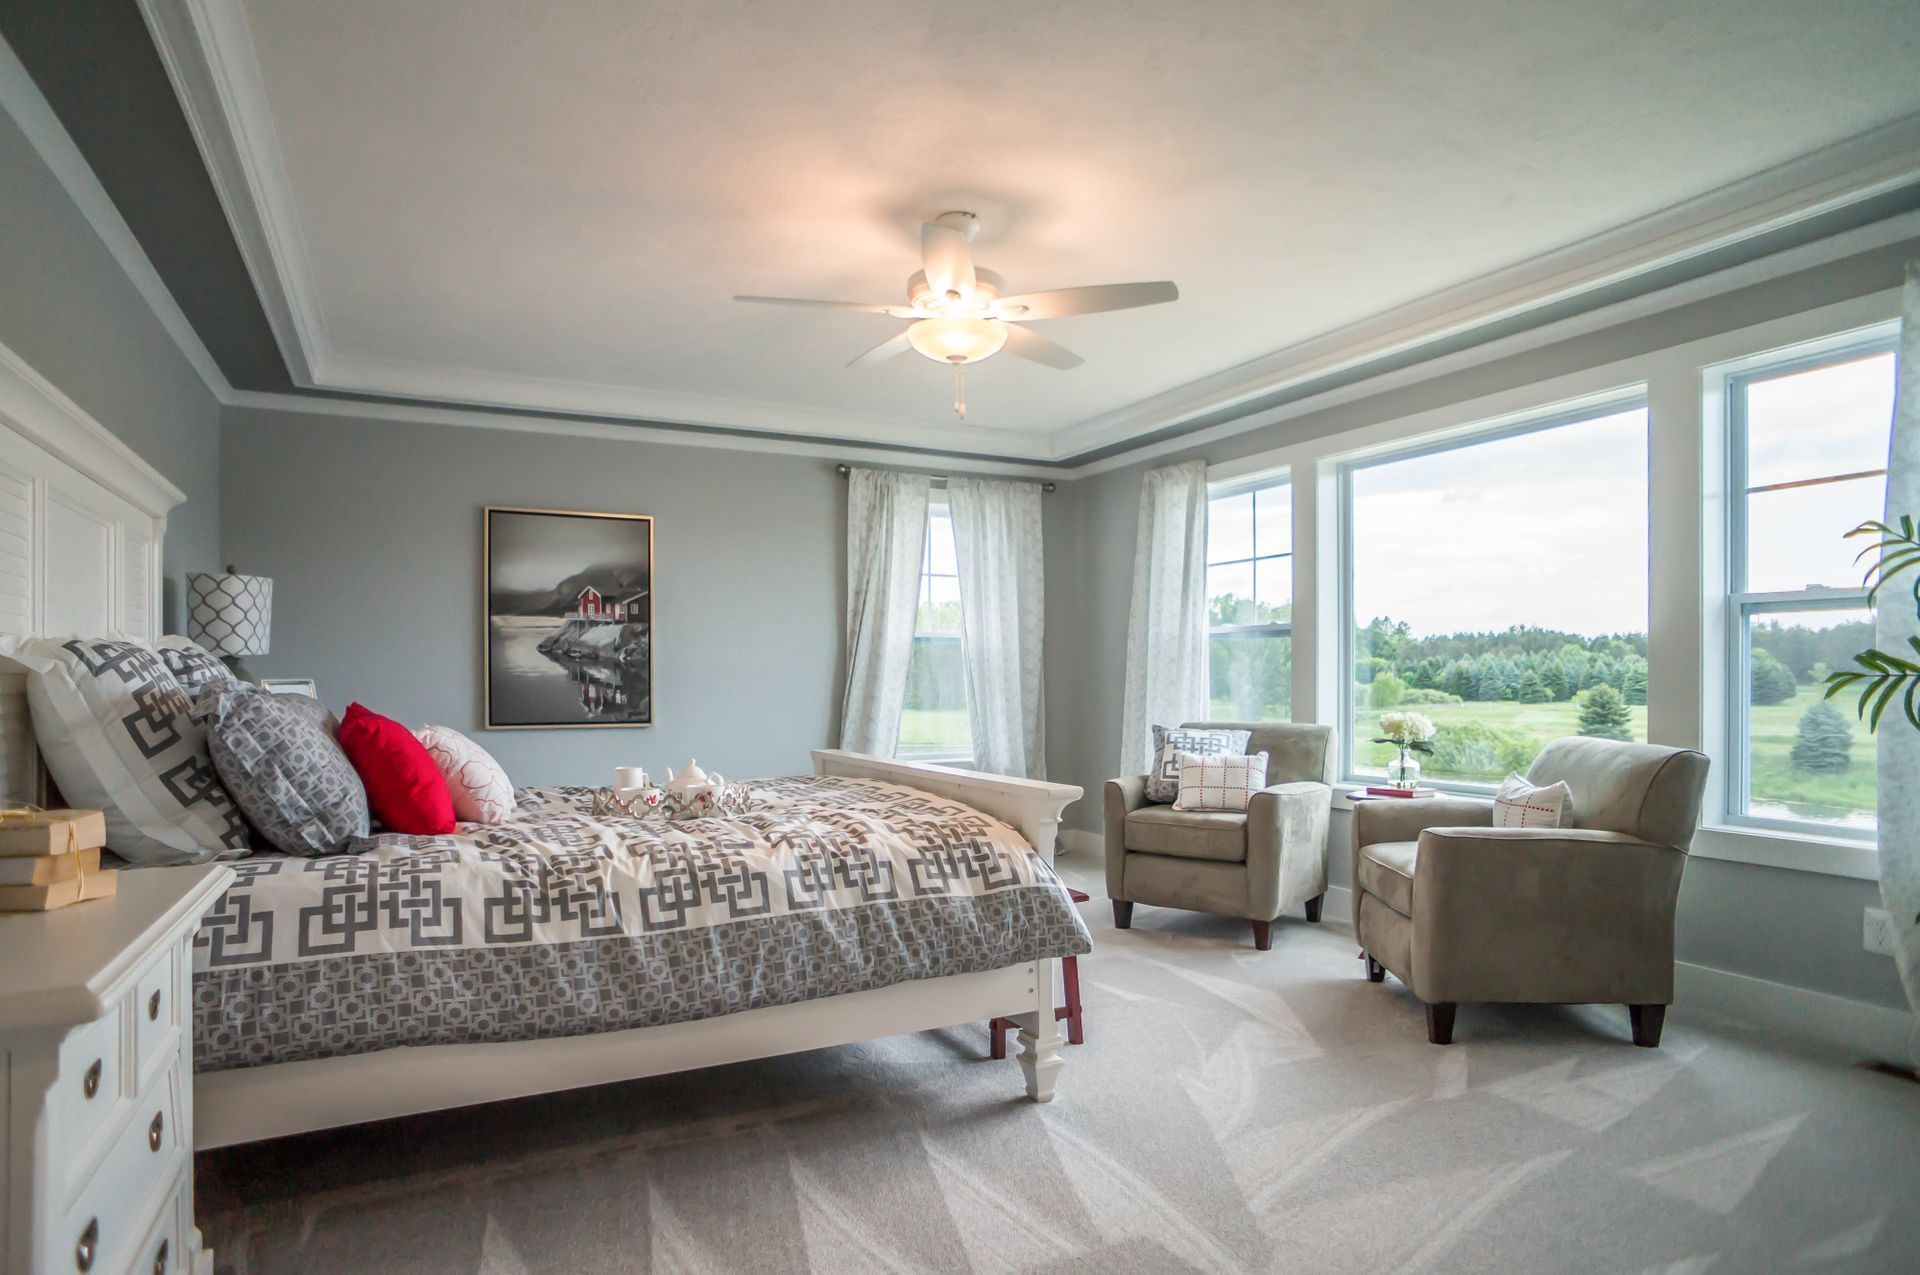 Bedroom featured in the Maxwell By Mayberry Homes in Lansing, MI